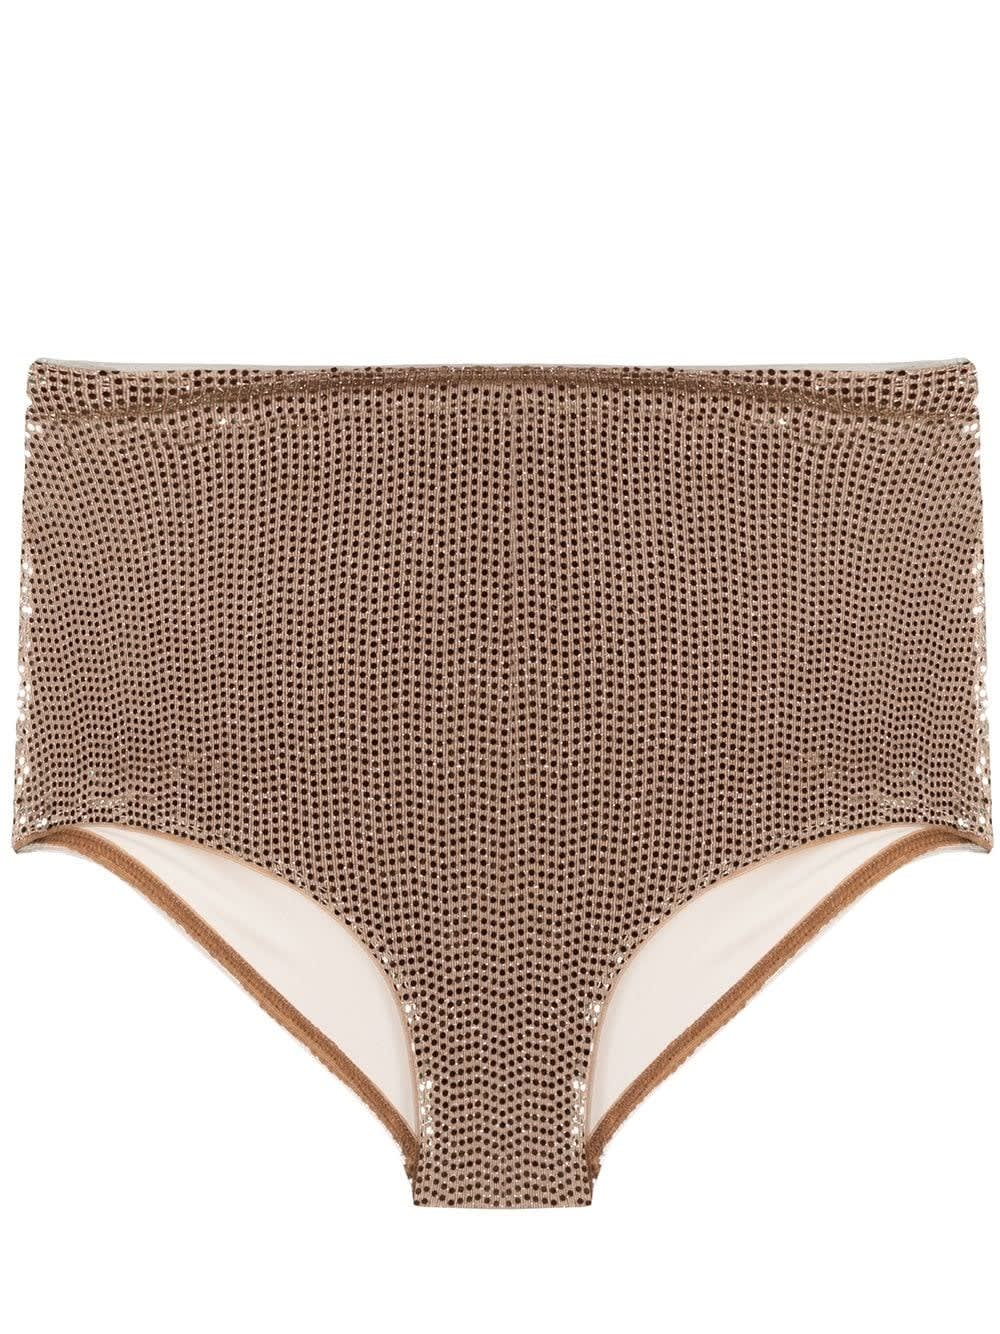 Forte Forte GOLD-COLORED HIGH-WAISTED SLIP